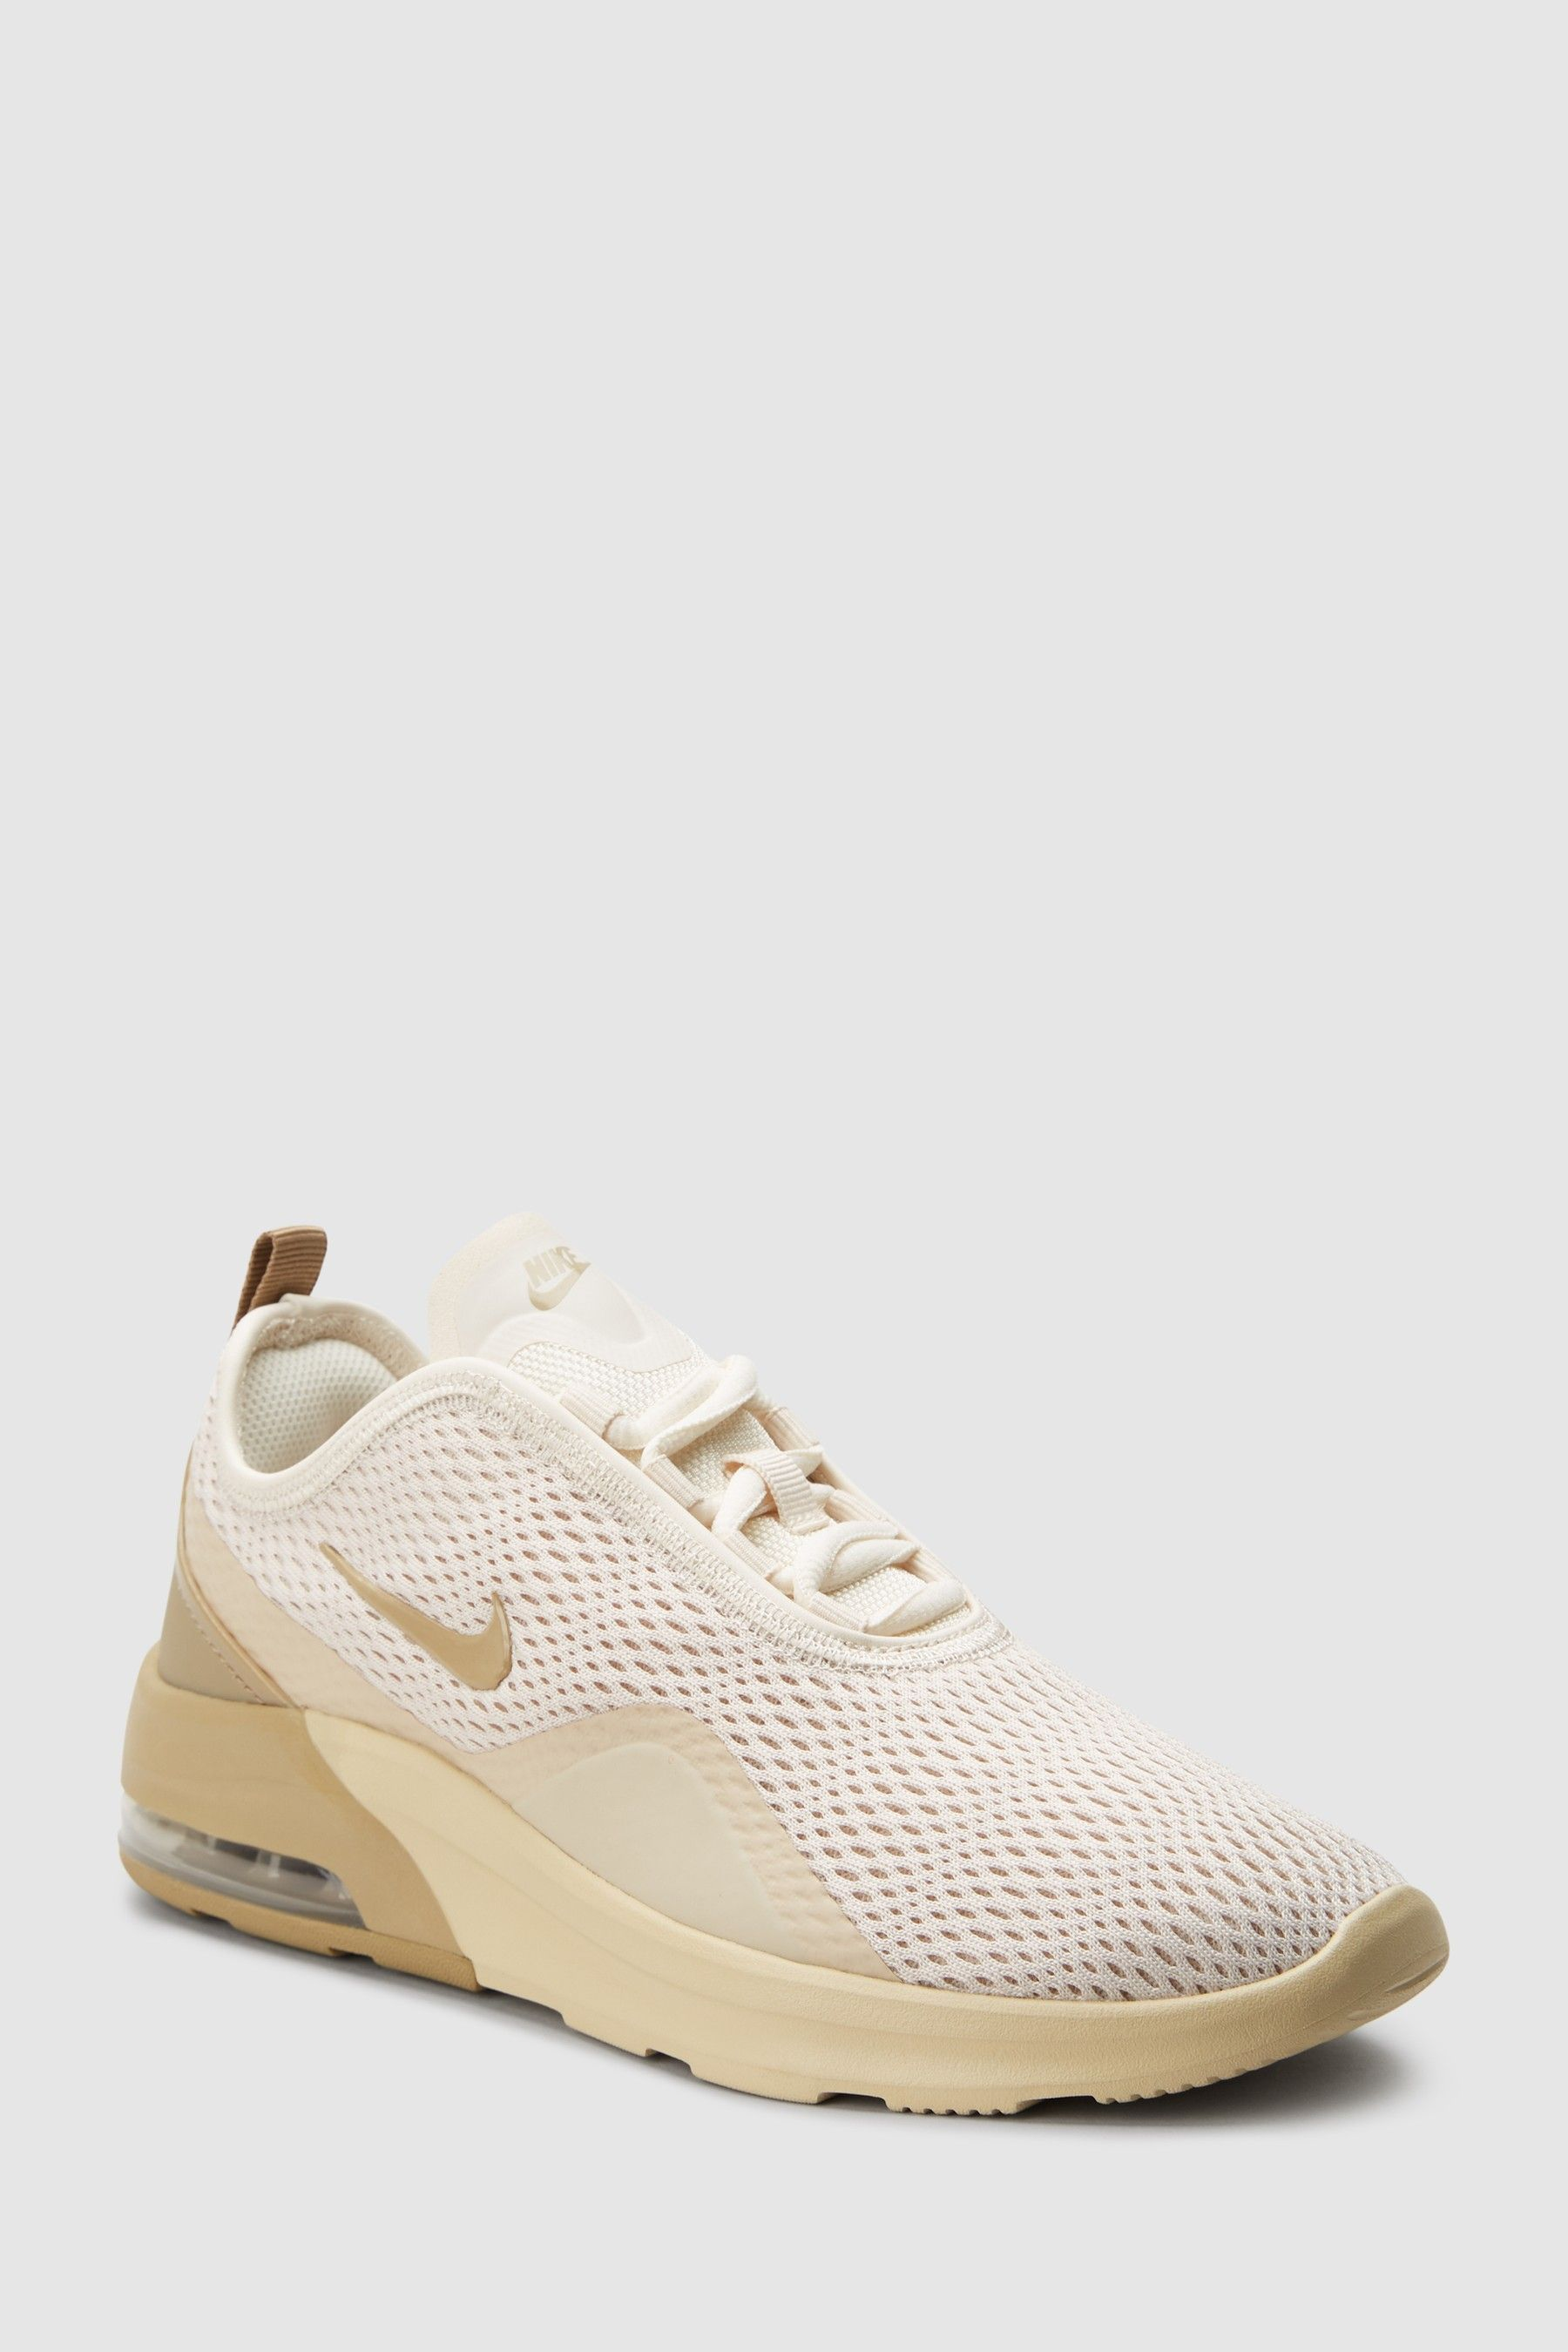 Wmns Air Max Thea Creamwhitemetallic Gold